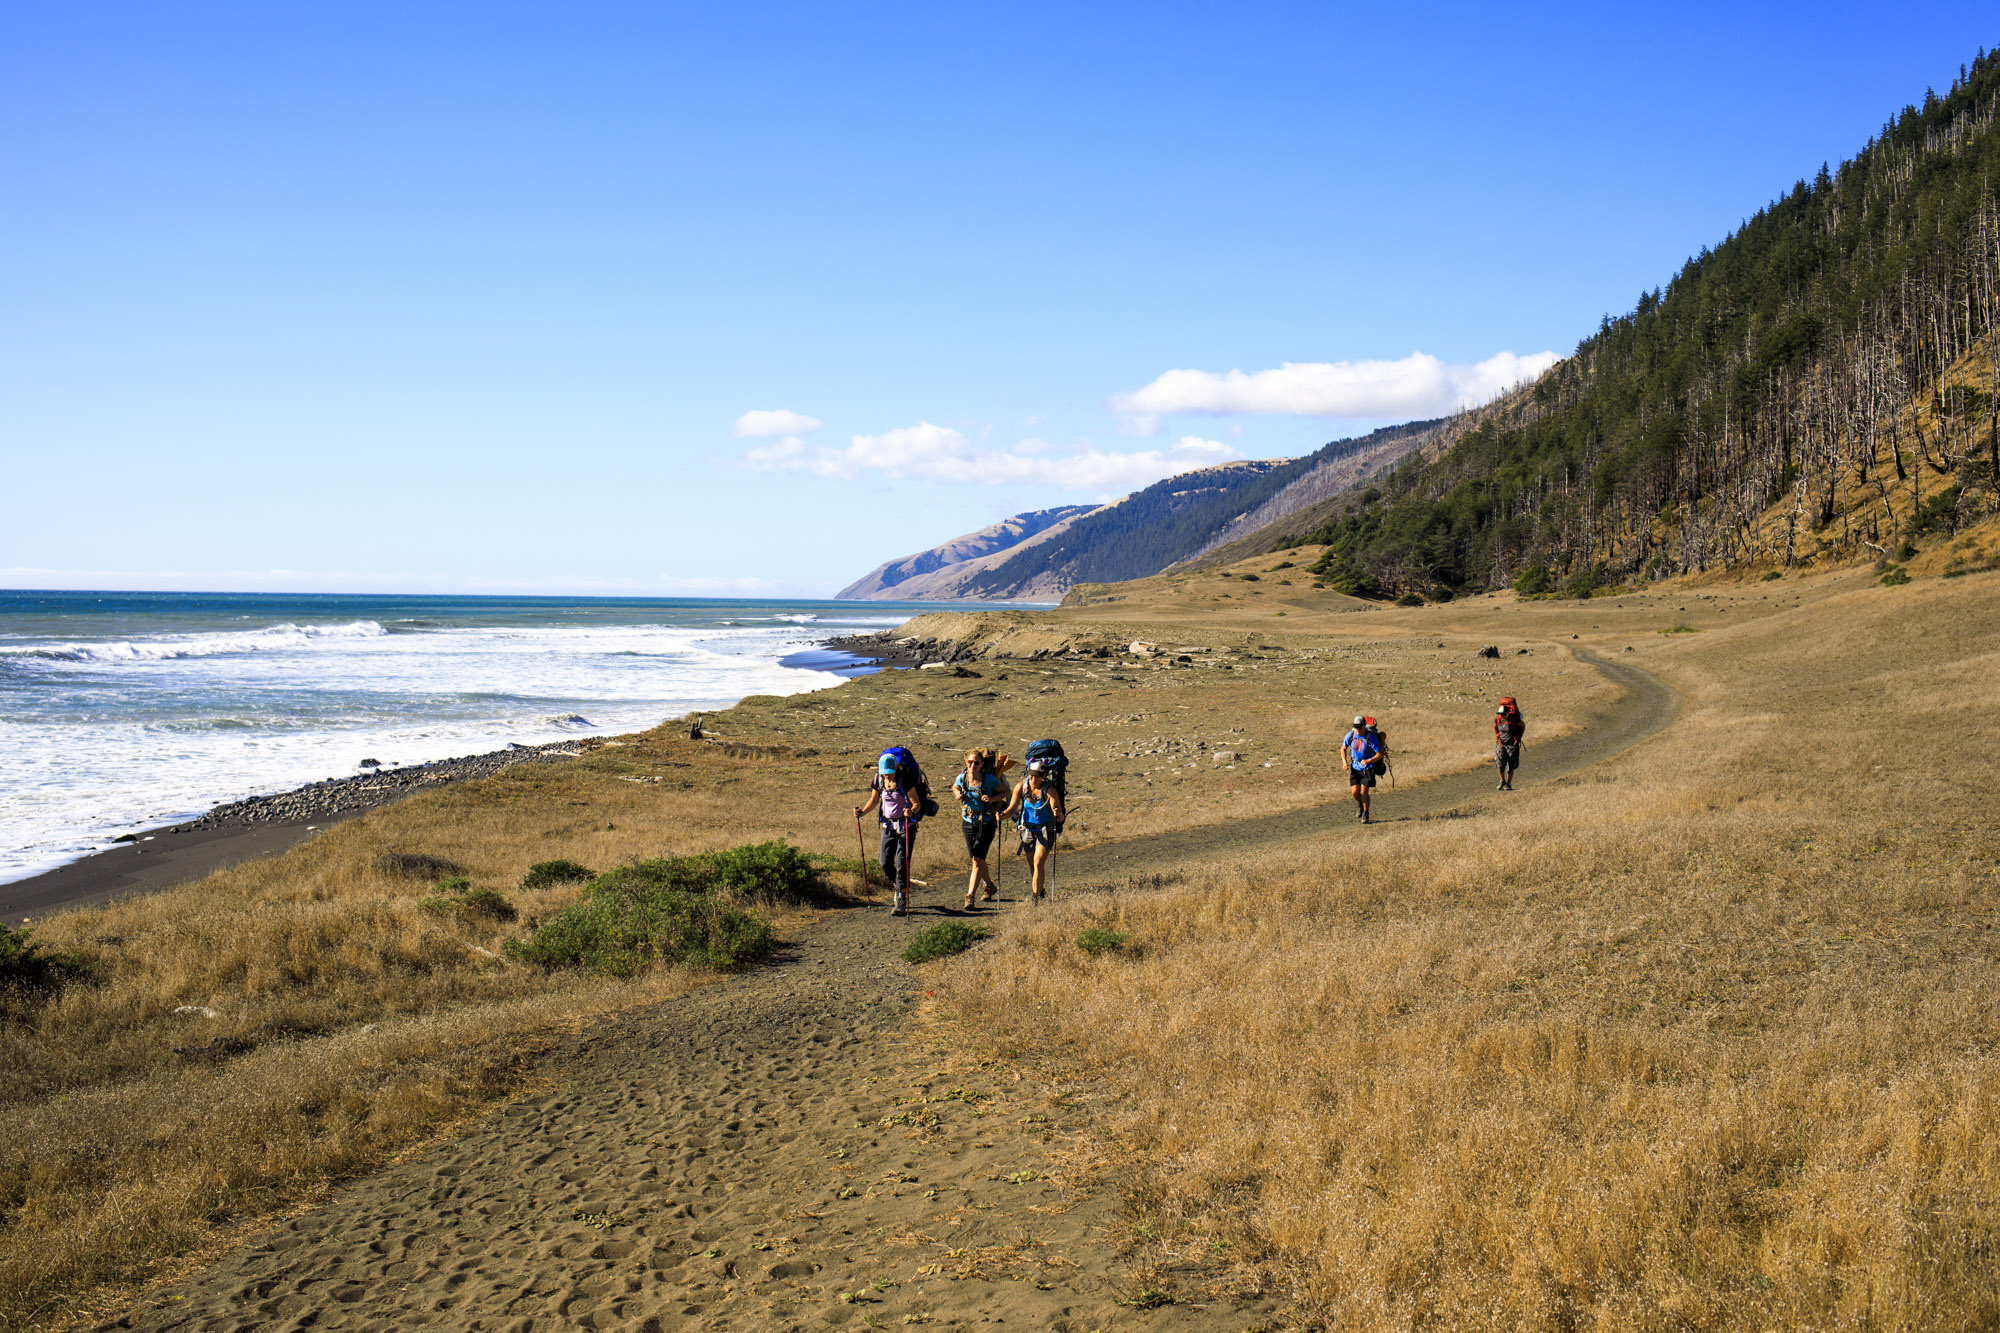 Hiking The Lost Coast Trail in Northern California